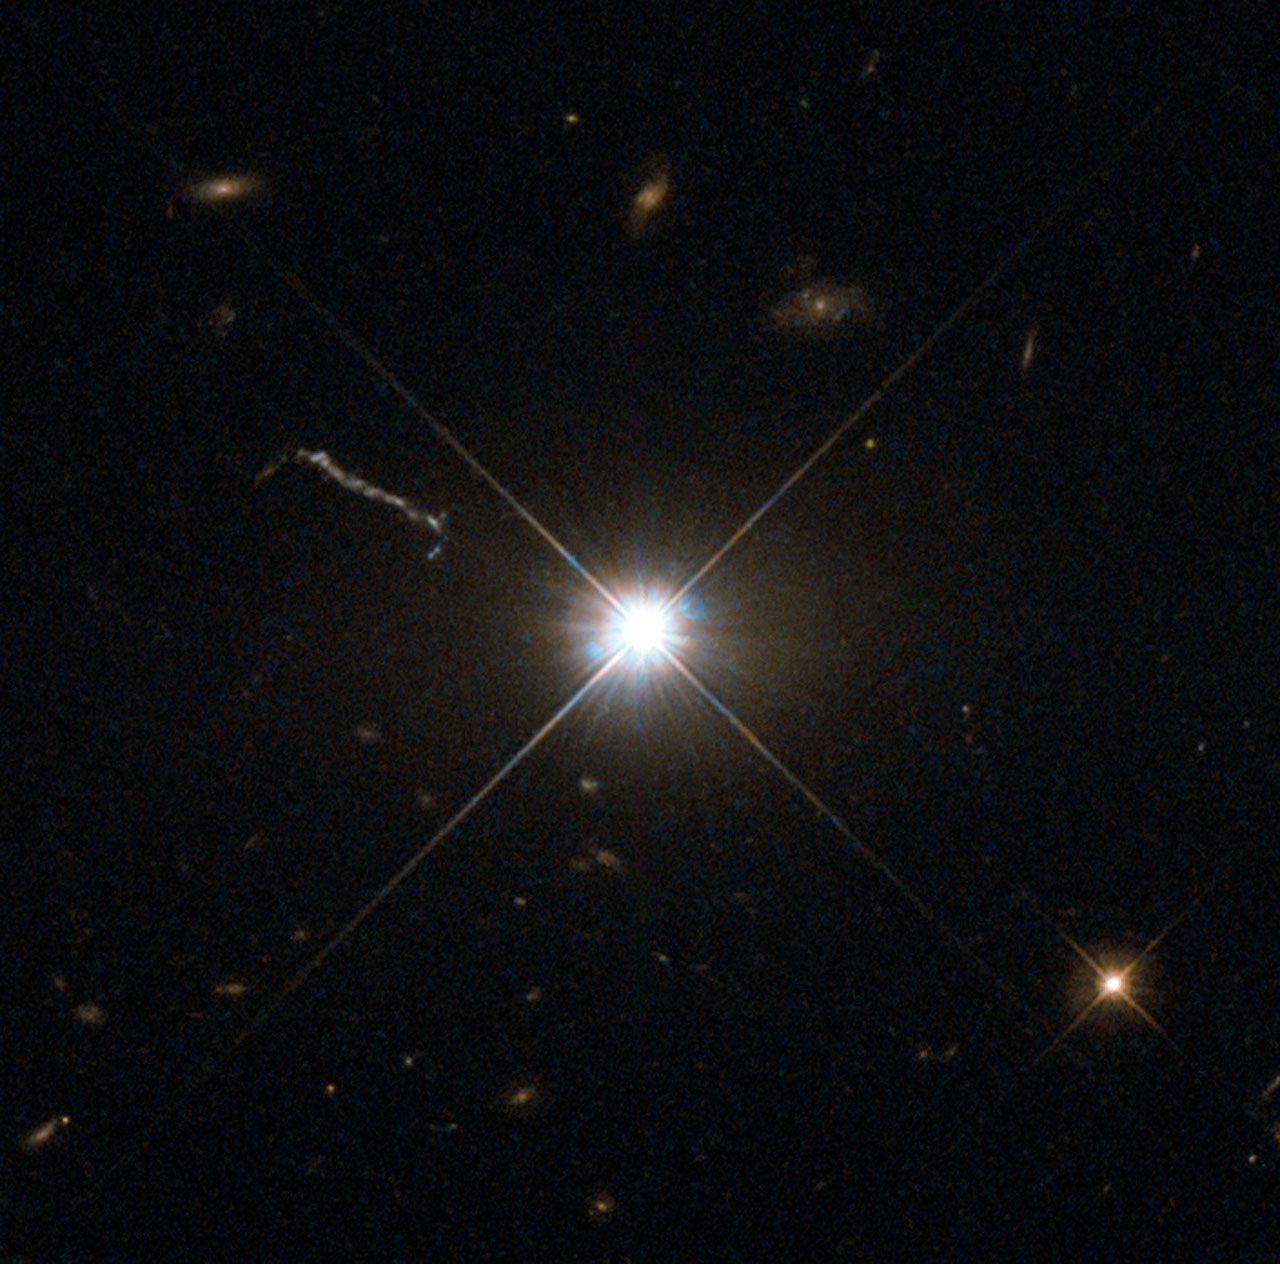 Quasar 3C 273 (ESA/Hubble & NASA)